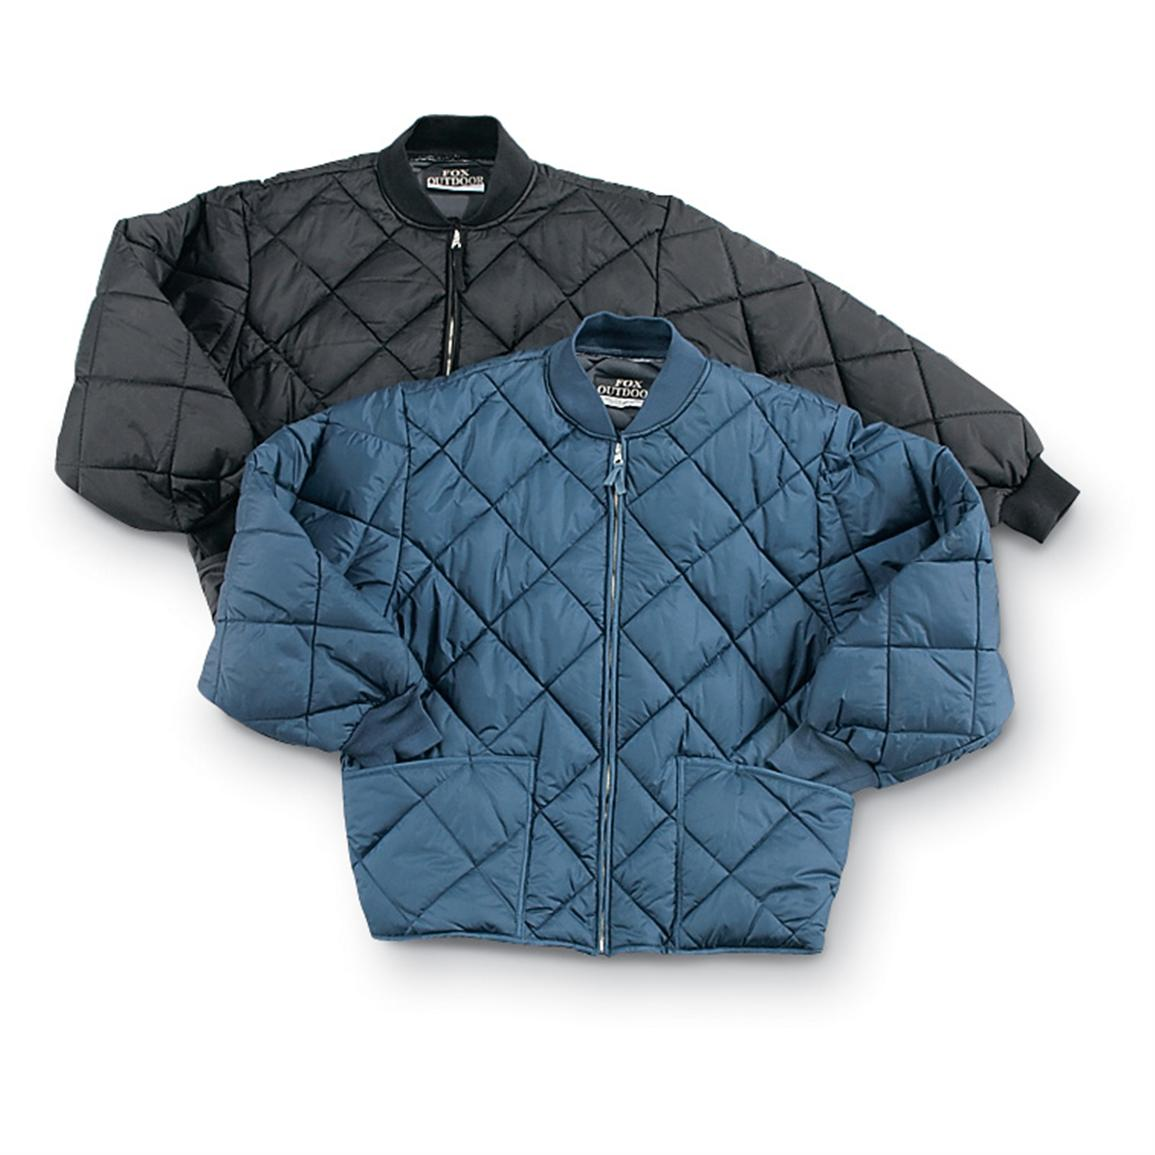 Military Insulated Diamond Quilted Flight Jacket in Black or Navy